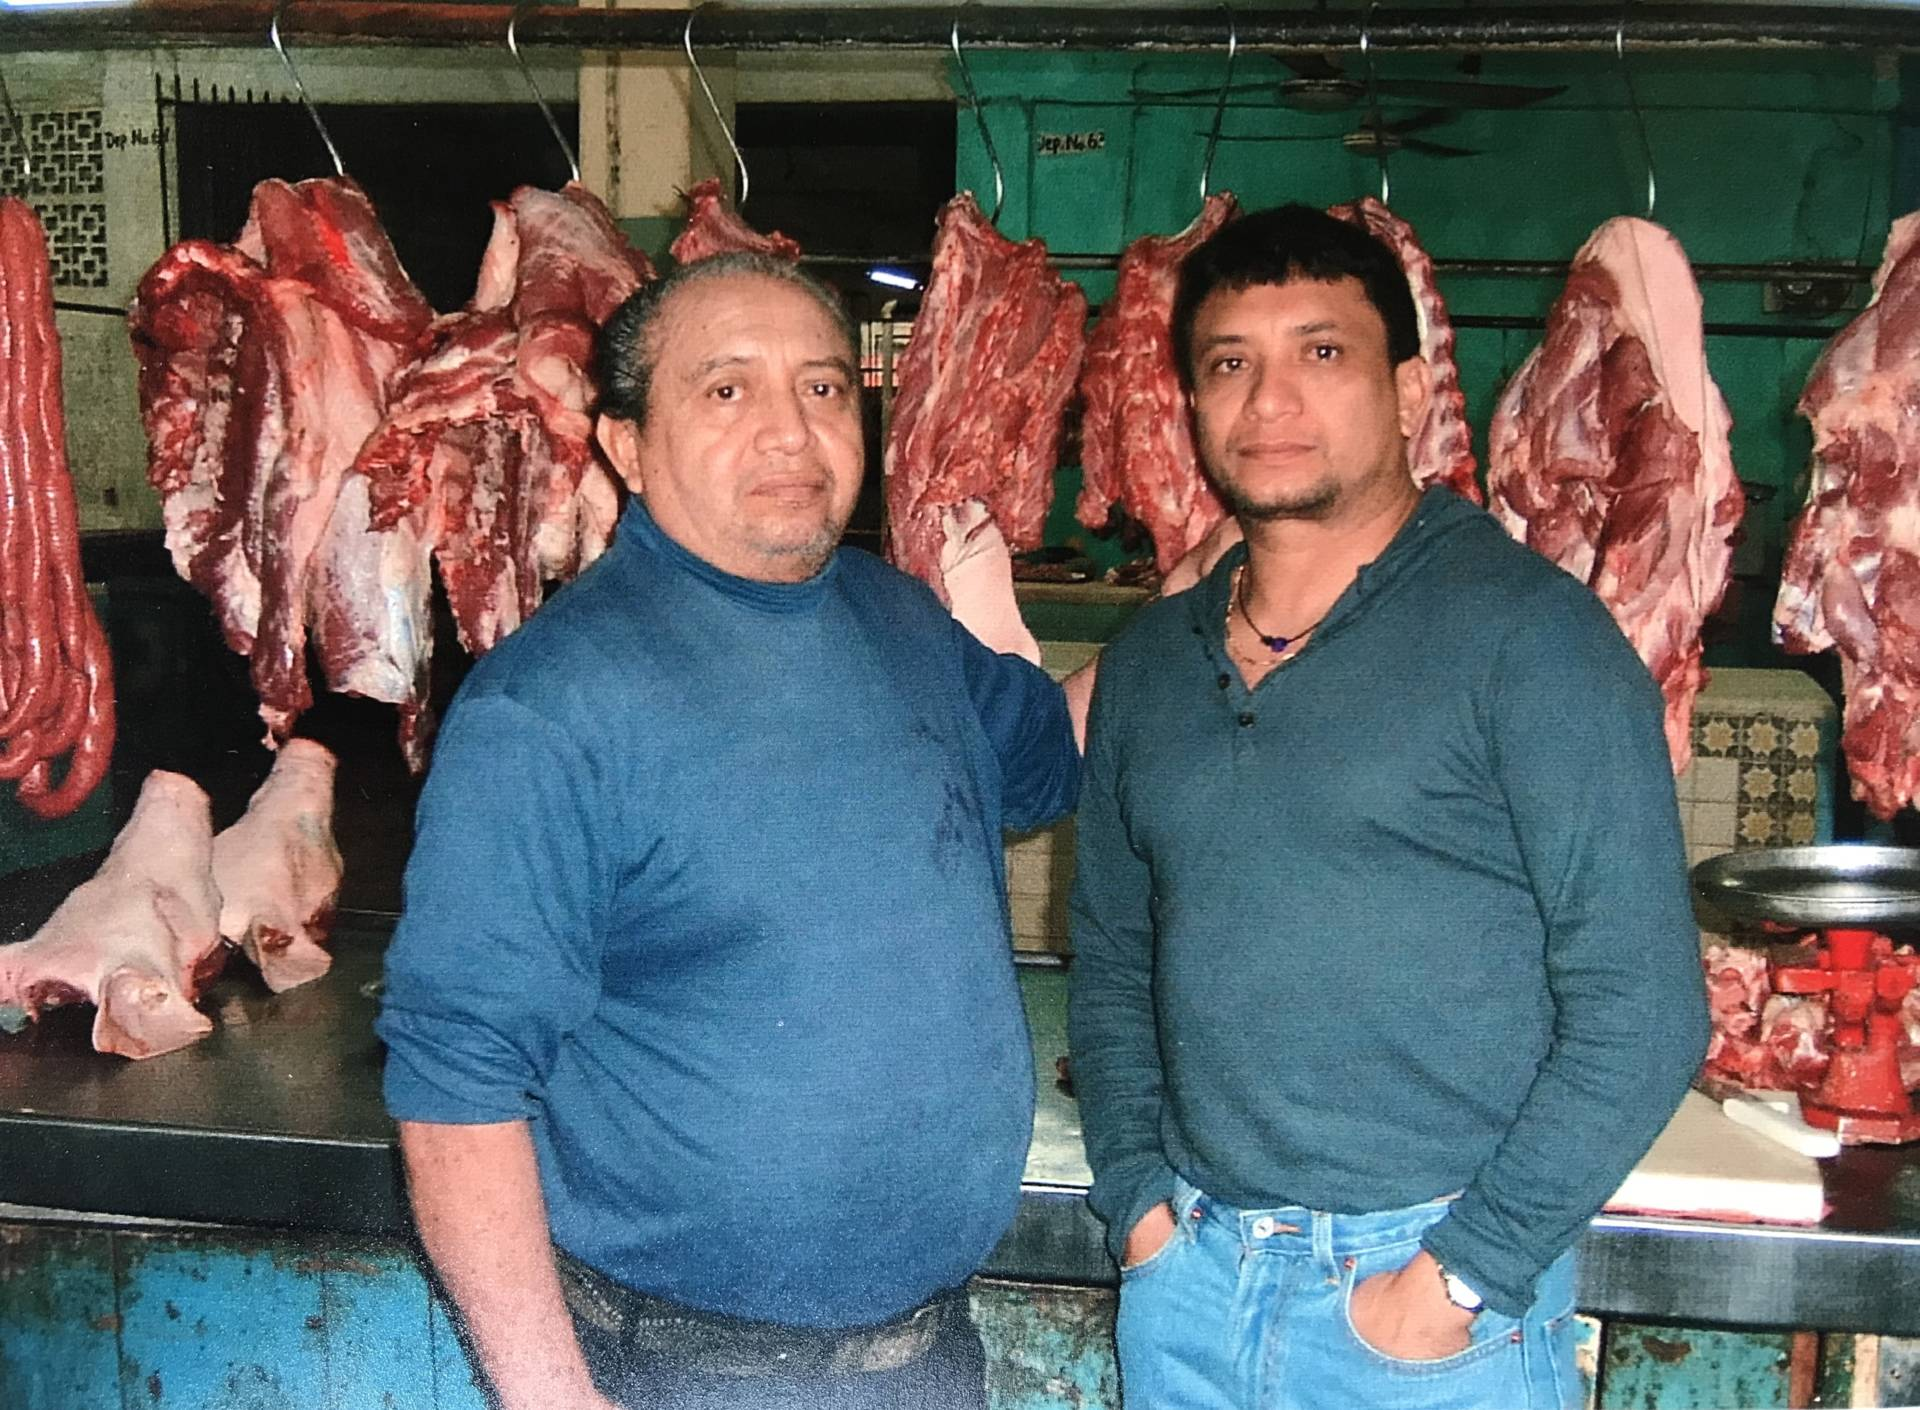 Mateo and father in the butchery